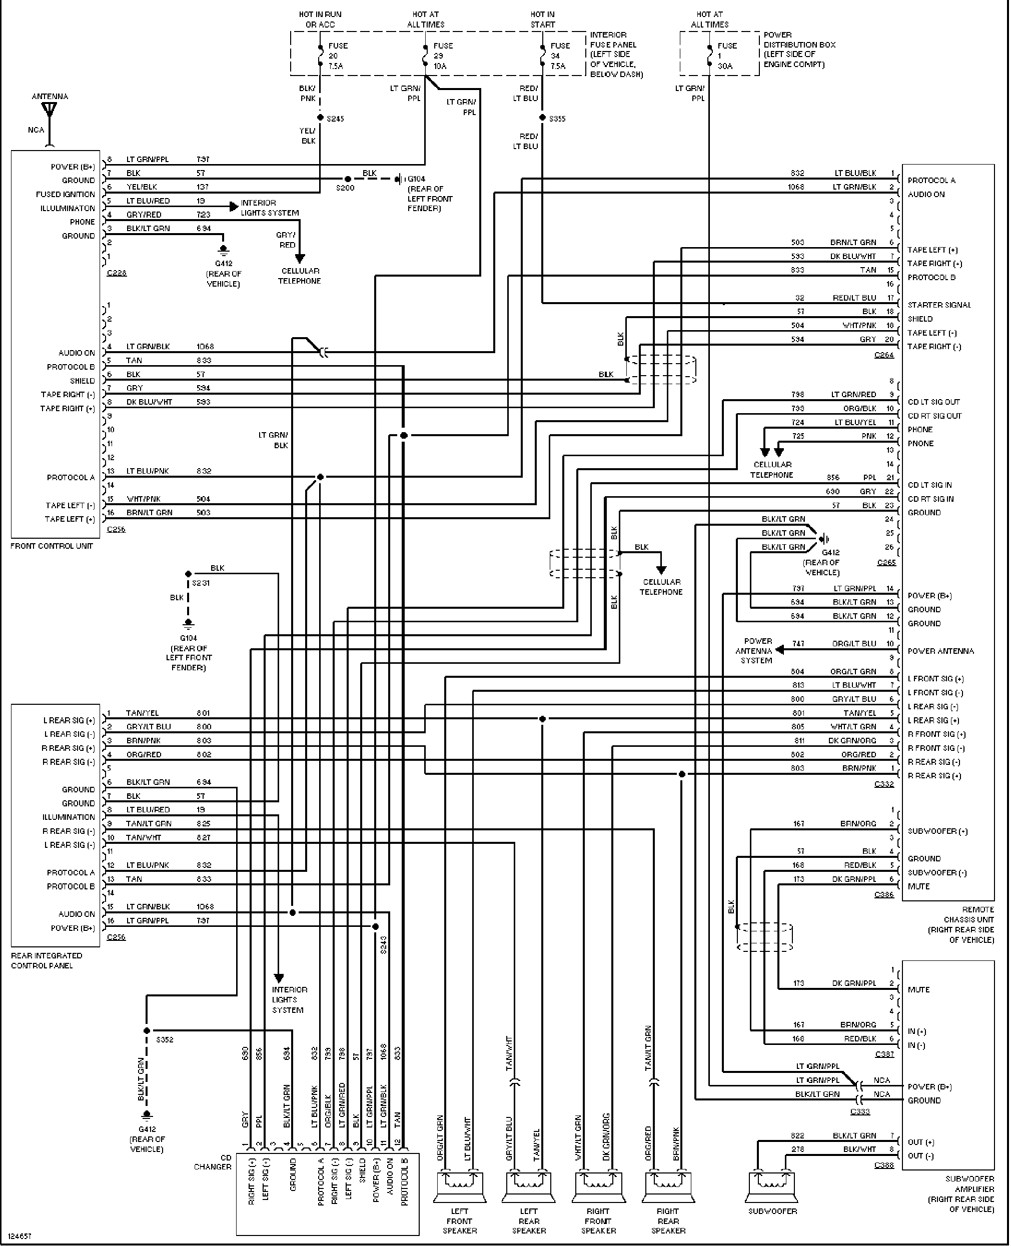 1997 Ford Explorer Radio Wiring Diagram Best Of Wiring Diagram Image 1997  Ford Explorer Wiring Schematic 1997 Ford Ranger Wiring Schematic